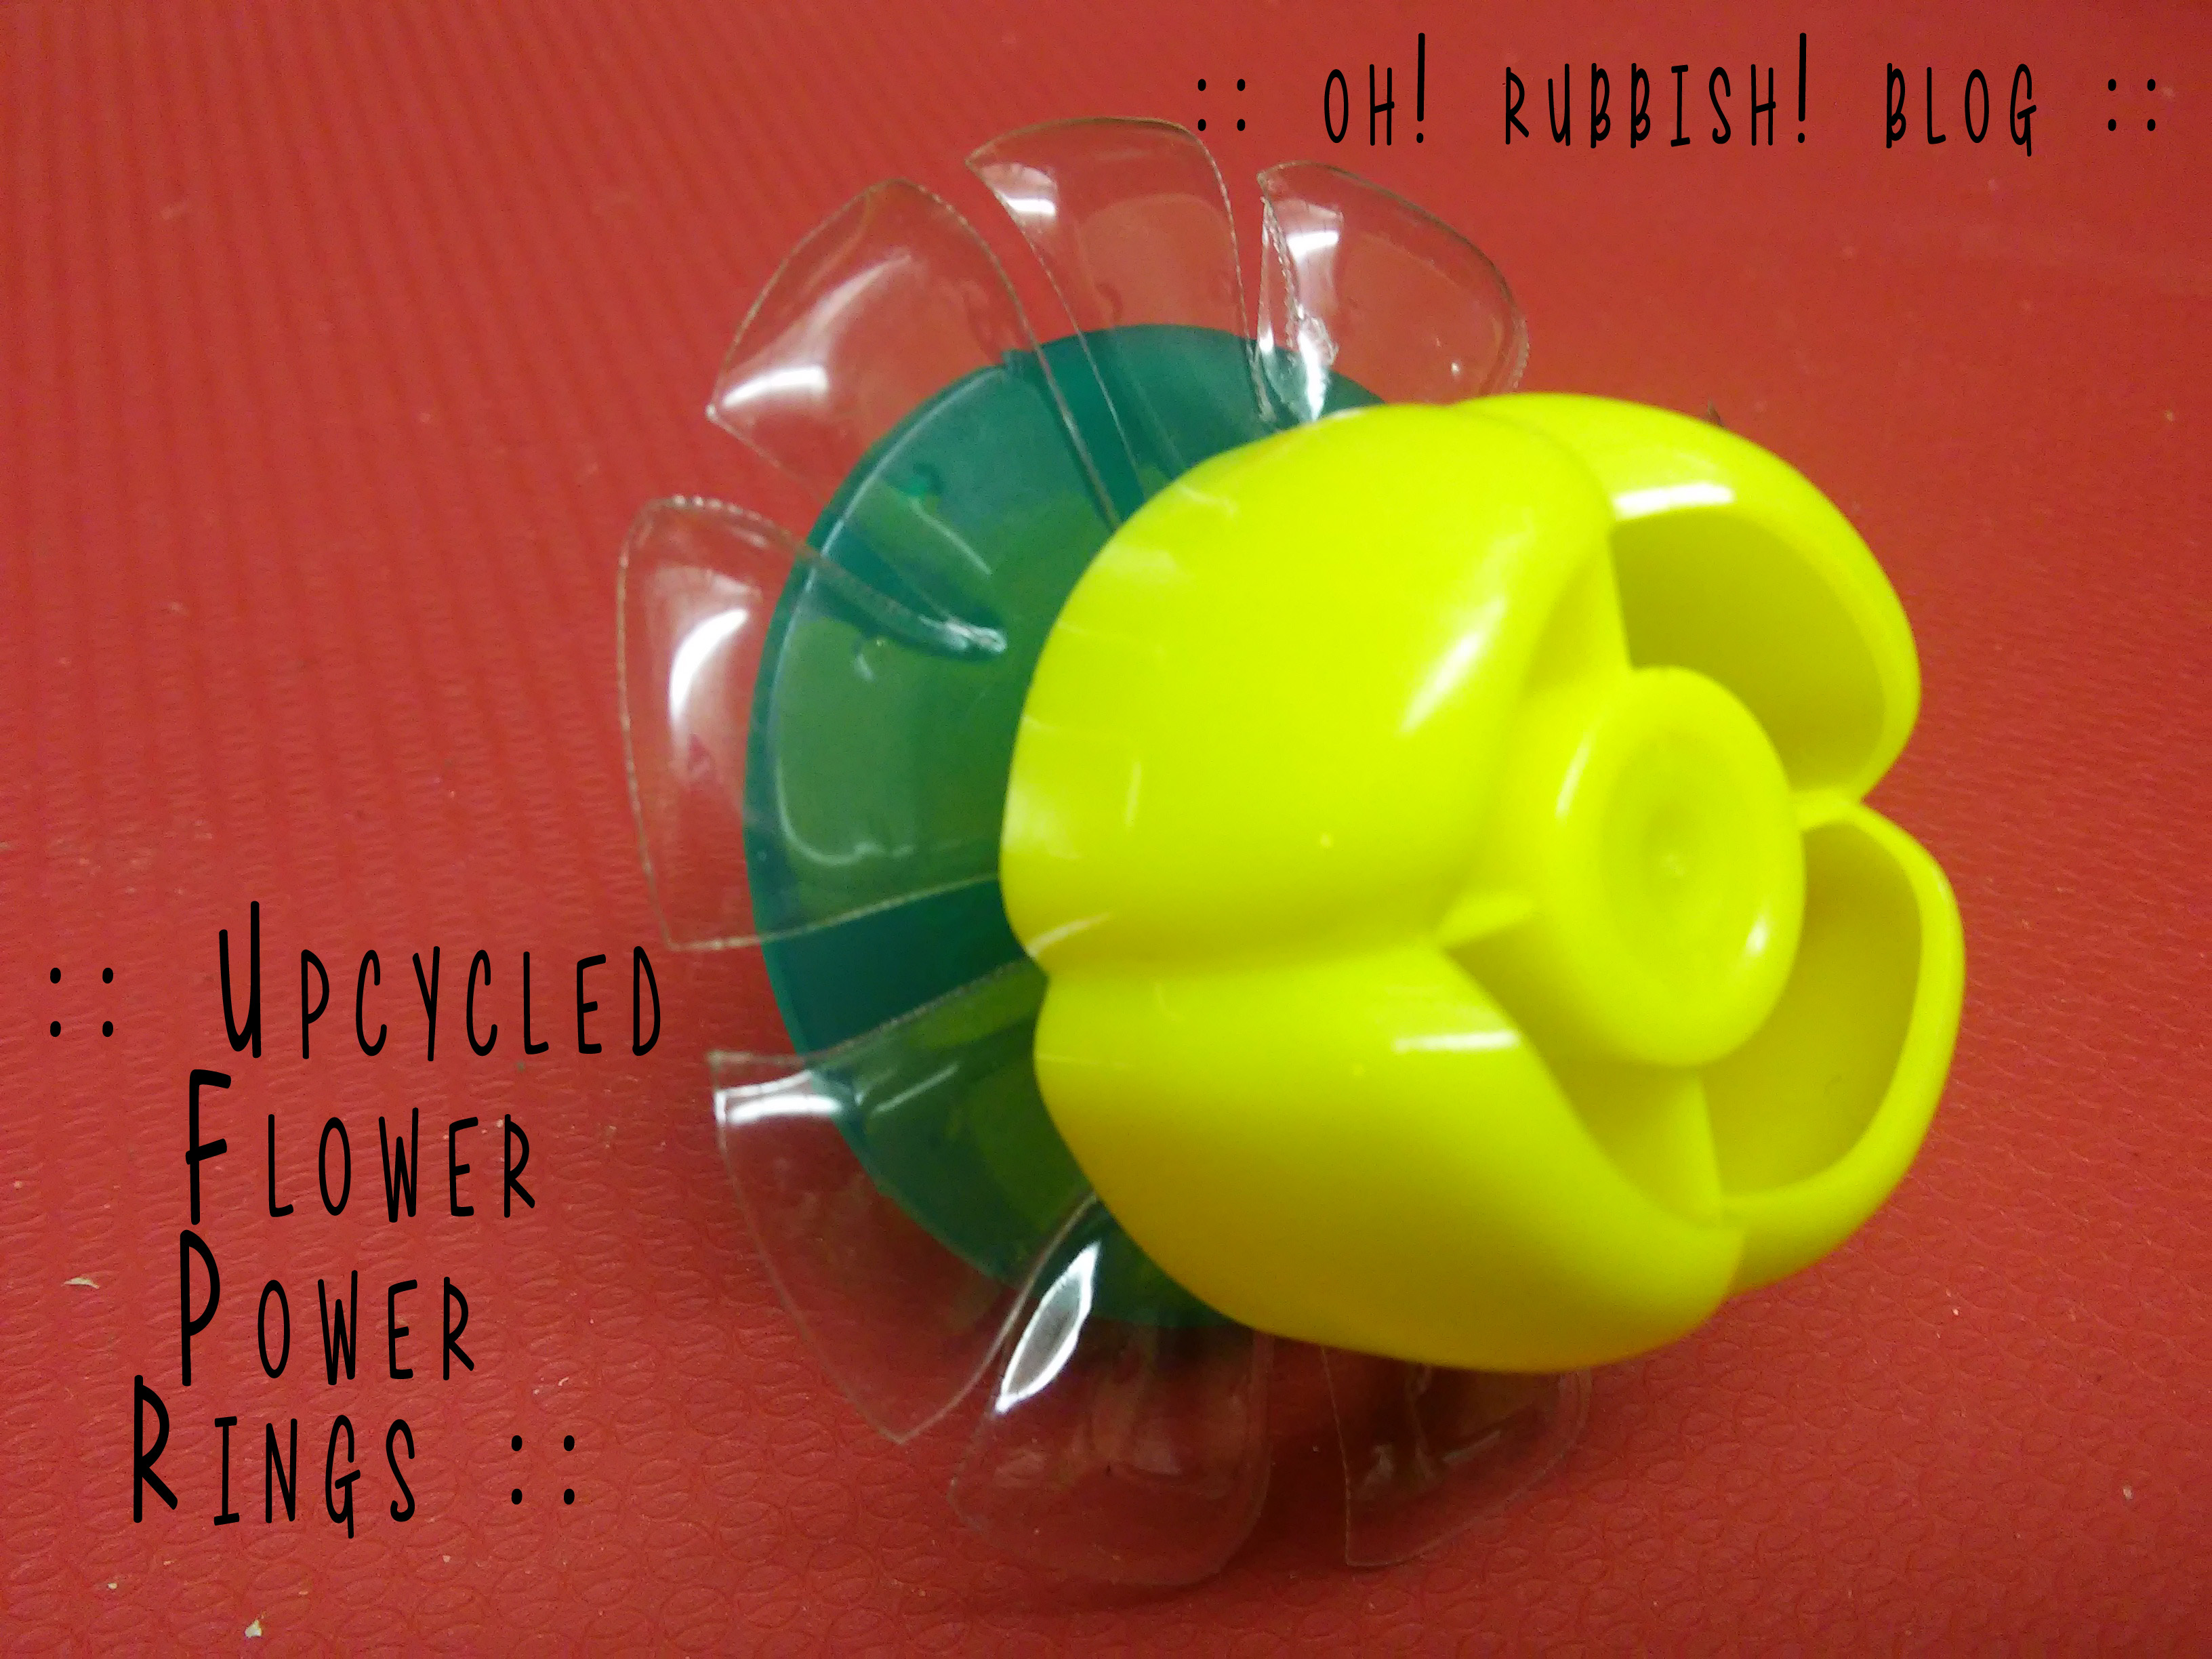 Upcycled Flower Power Rings by oh! rubbish! blog